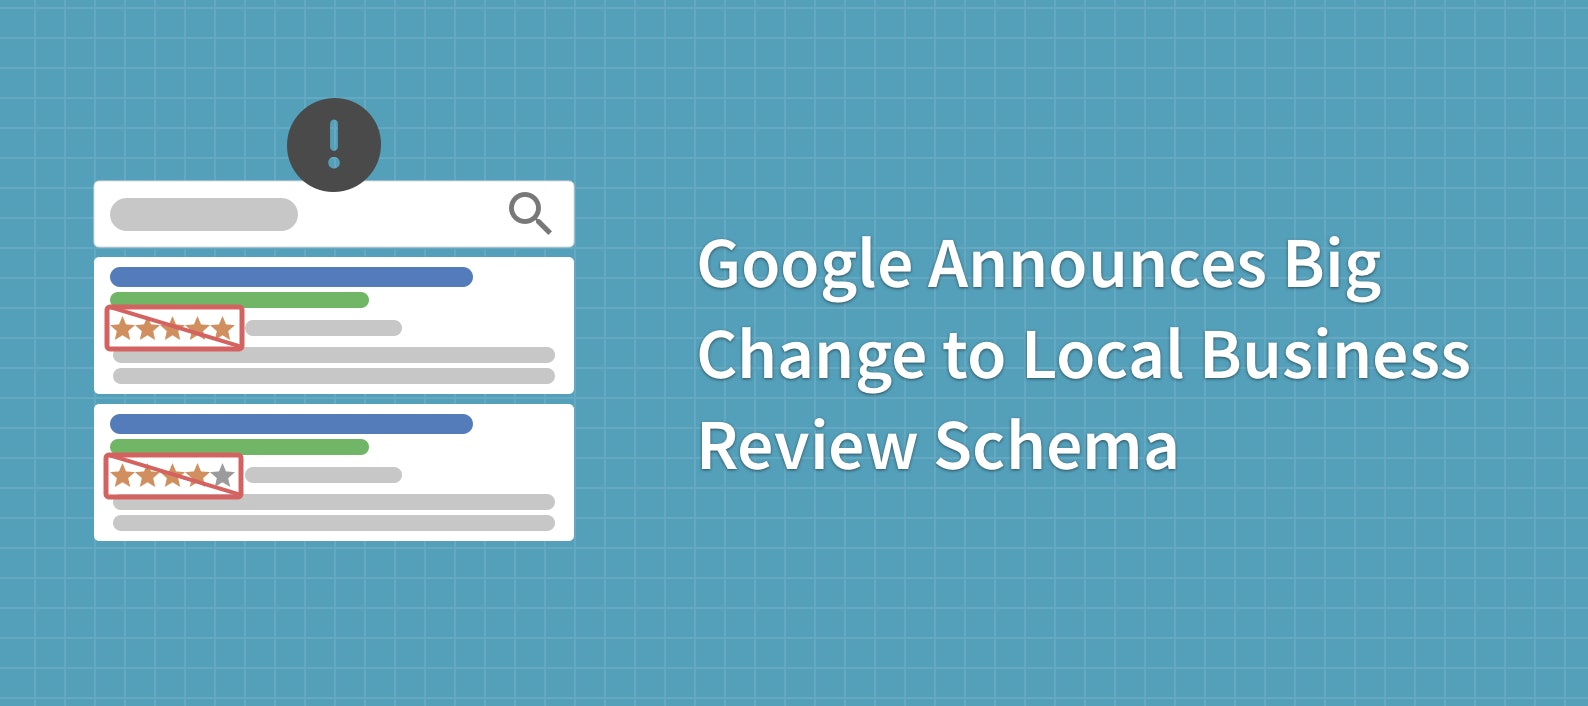 Google Announces Big Change to Local Business Review Schema